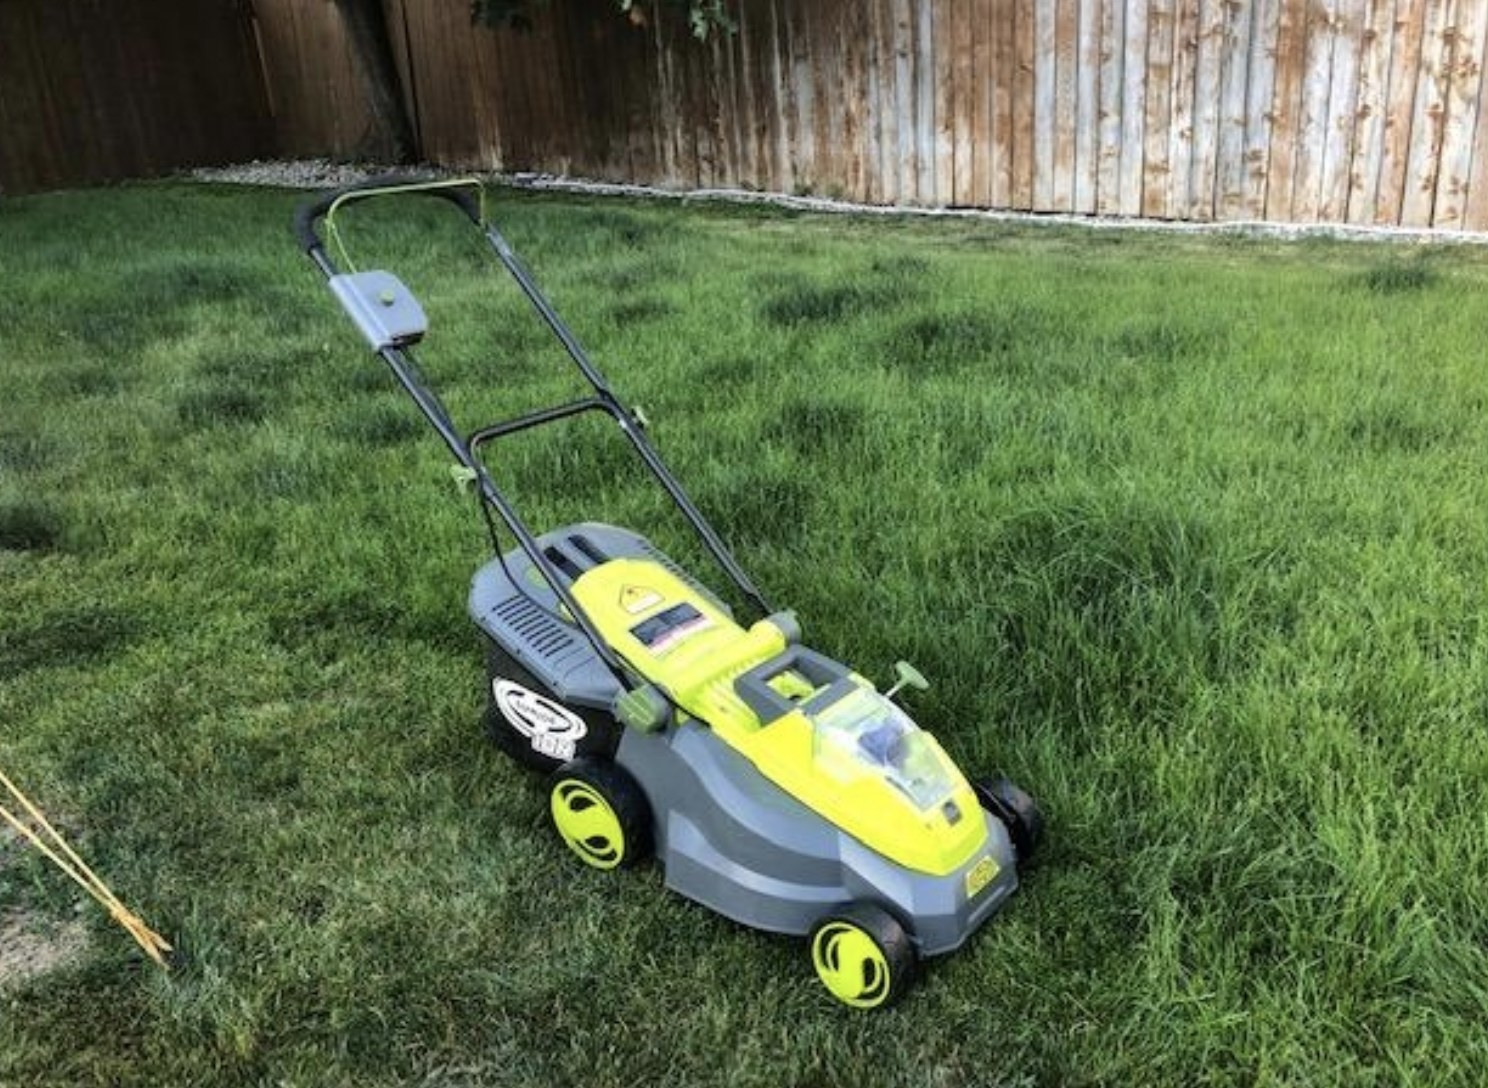 a lawn mower in the middle of a yard on top of freshly cut grass